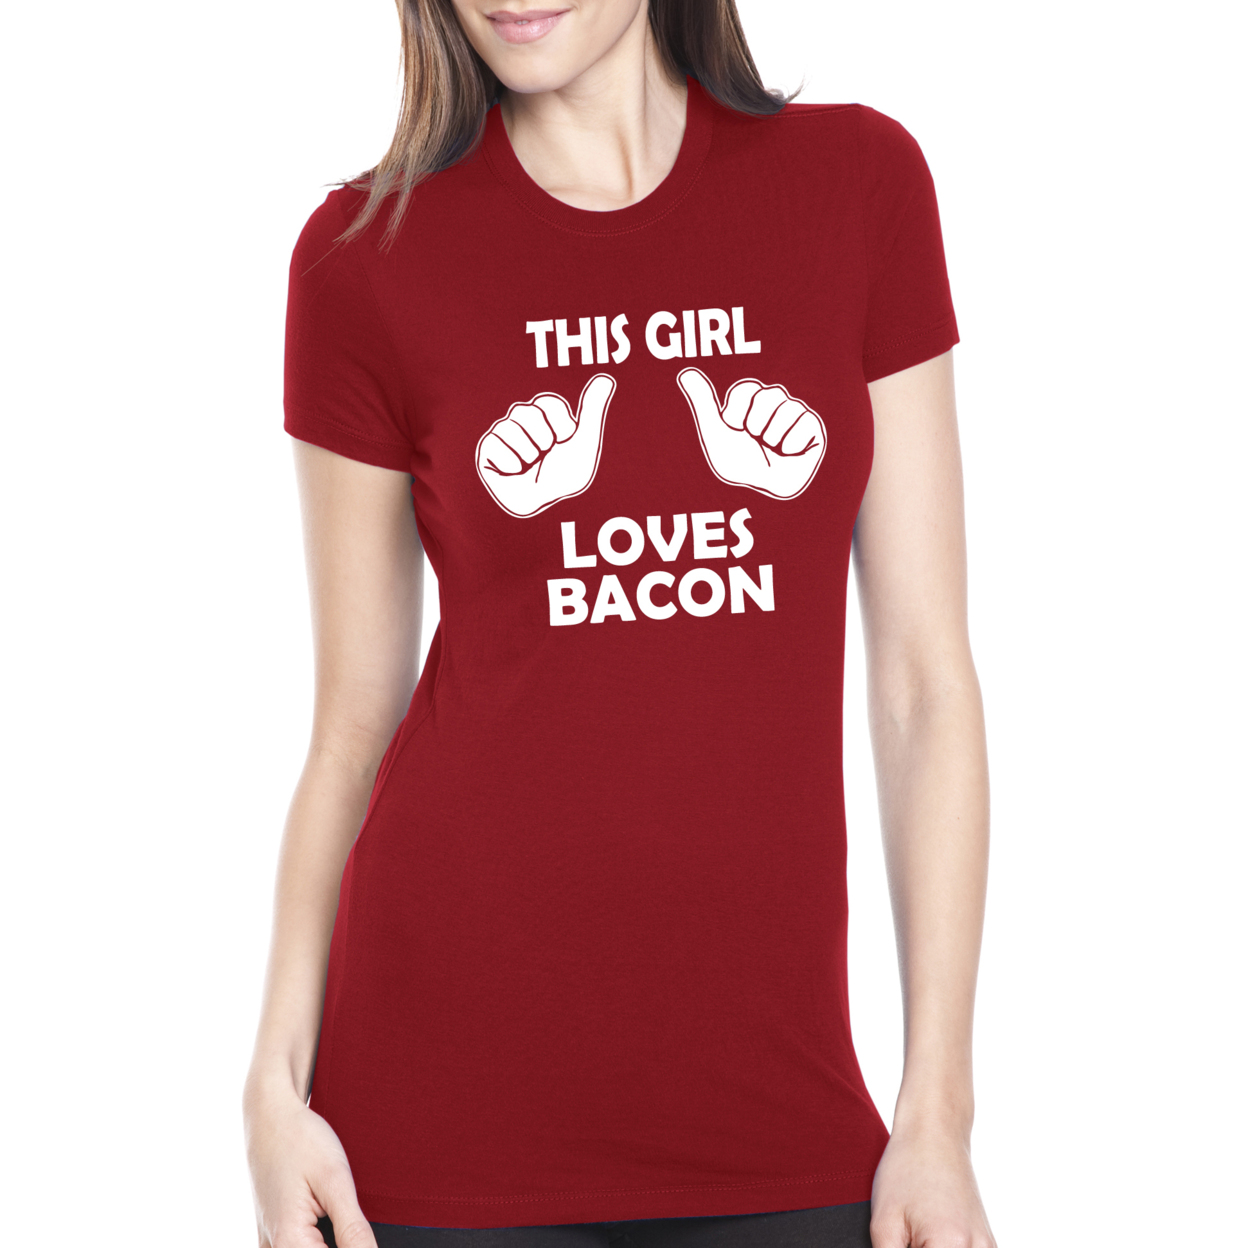 Women's This Girl Loves Bacon Funny T Shirt - Small-Women's 53bd9f4872989a5c700007f6